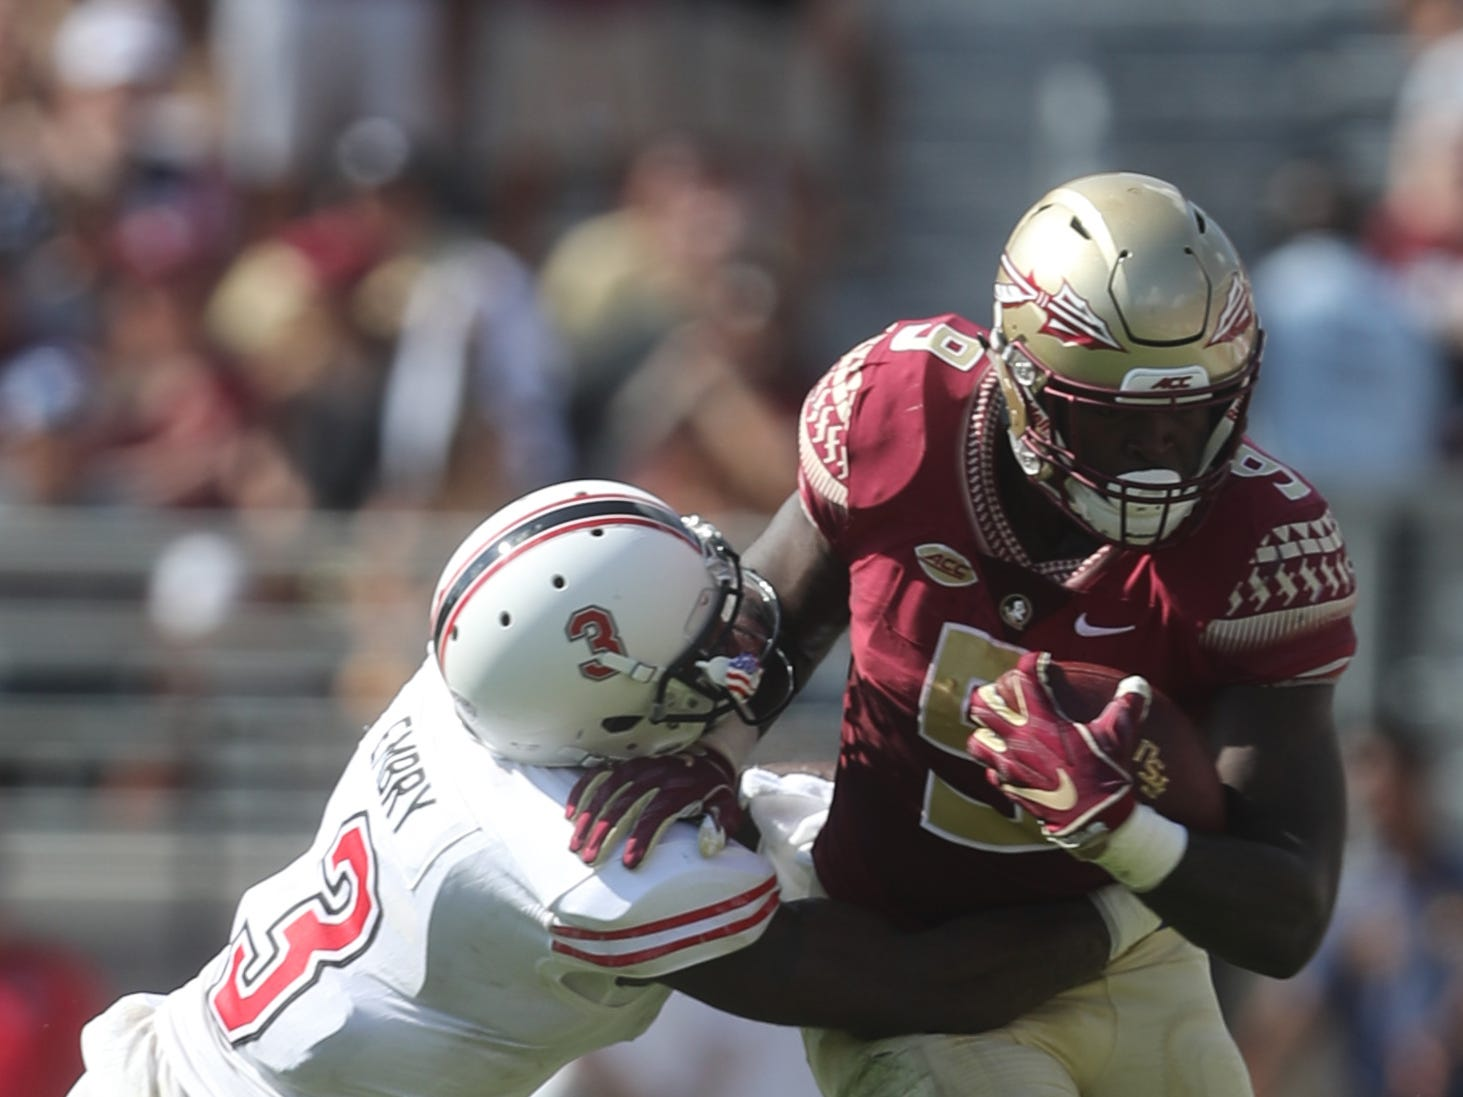 Northern Illinois Huskies cornerback Jalen Embry (3) tackles Florida State Seminoles running back Jacques Patrick (9) during a game between the Florida State University Seminoles and the Northern Illinois University Huskies at Doak S. Campbell Stadium in Tallahassee, Fla. Saturday, September 22, 2018.